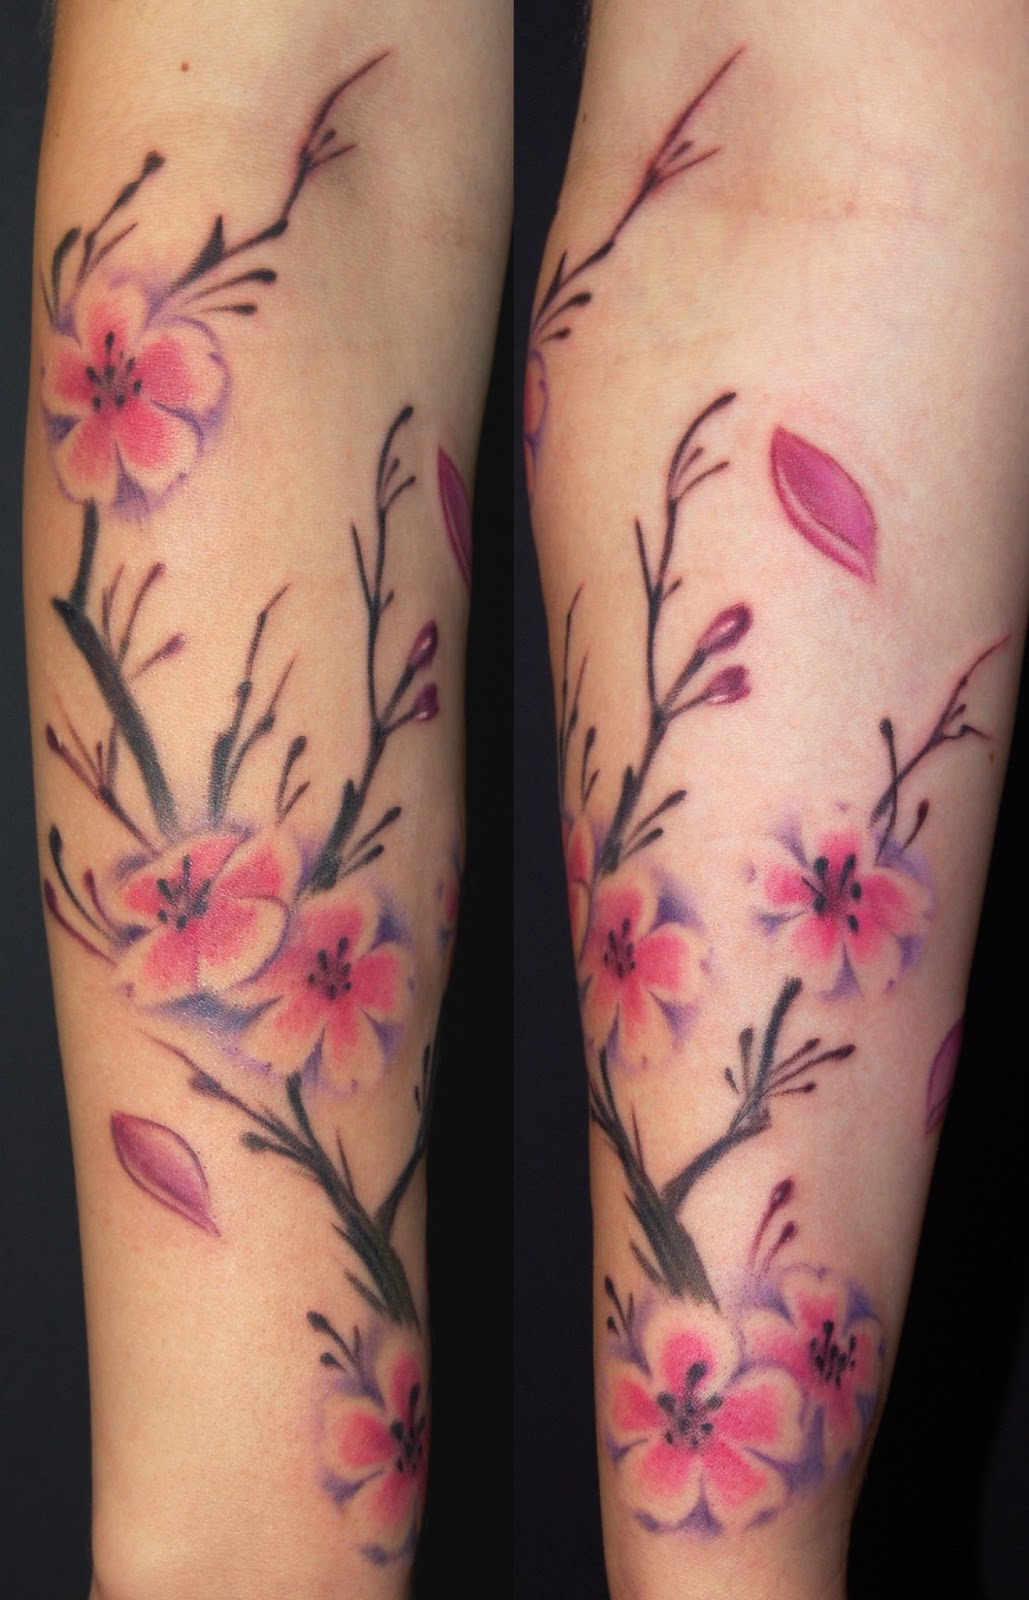 My Tattoo Designs: Cherry Blossom Tree Tattoo